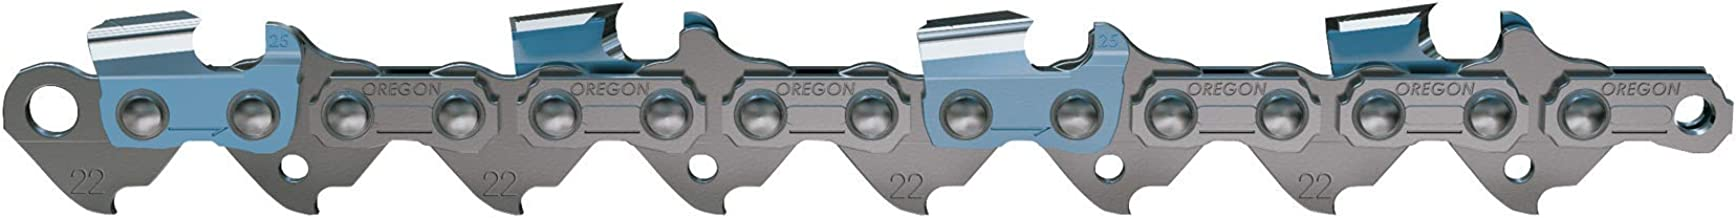 Oregon 22BPX081G Micro-Chisel Saw Chain .325-Inch Pitch .063-Inch Gauge 81 Drive Link Count